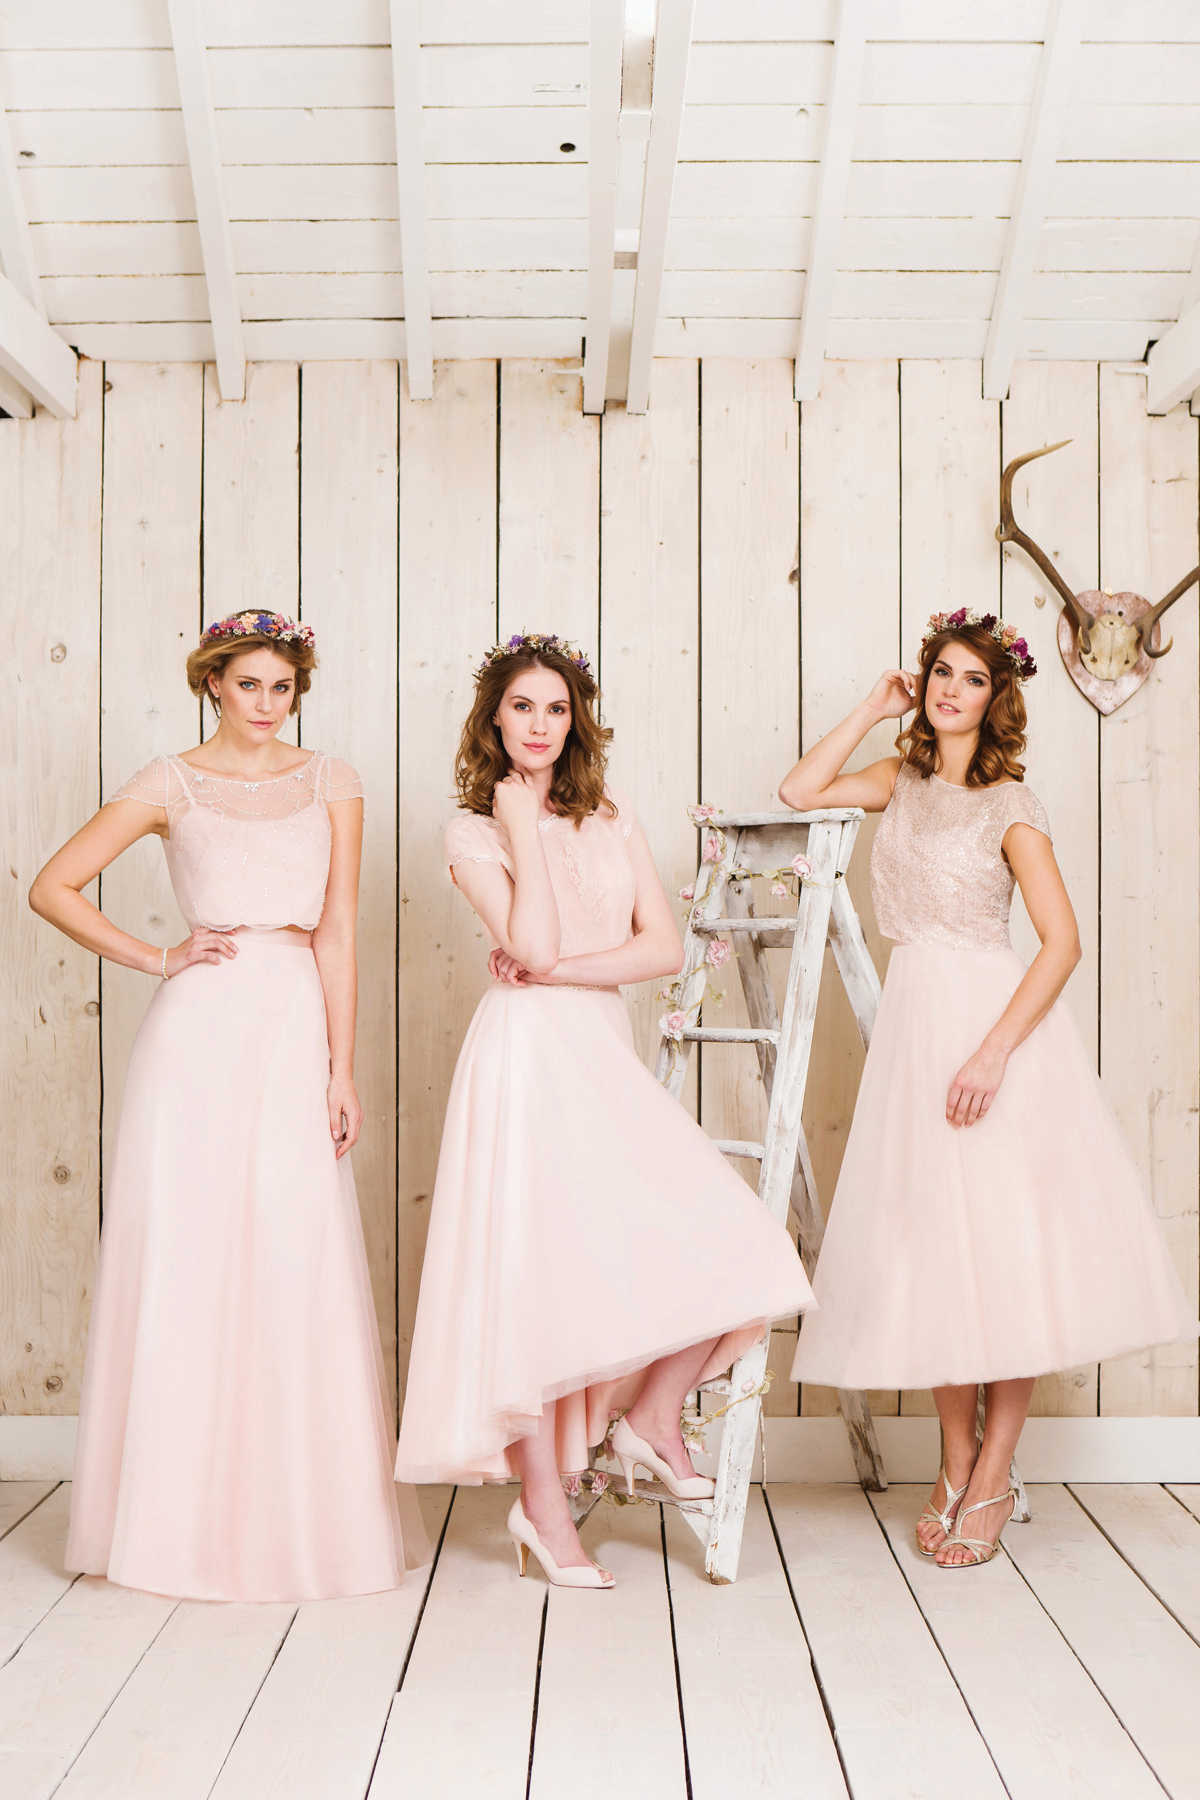 True bride figure flattering wedding dresses for brides pastel pink bridesmaids dresses from true bride ombrellifo Gallery